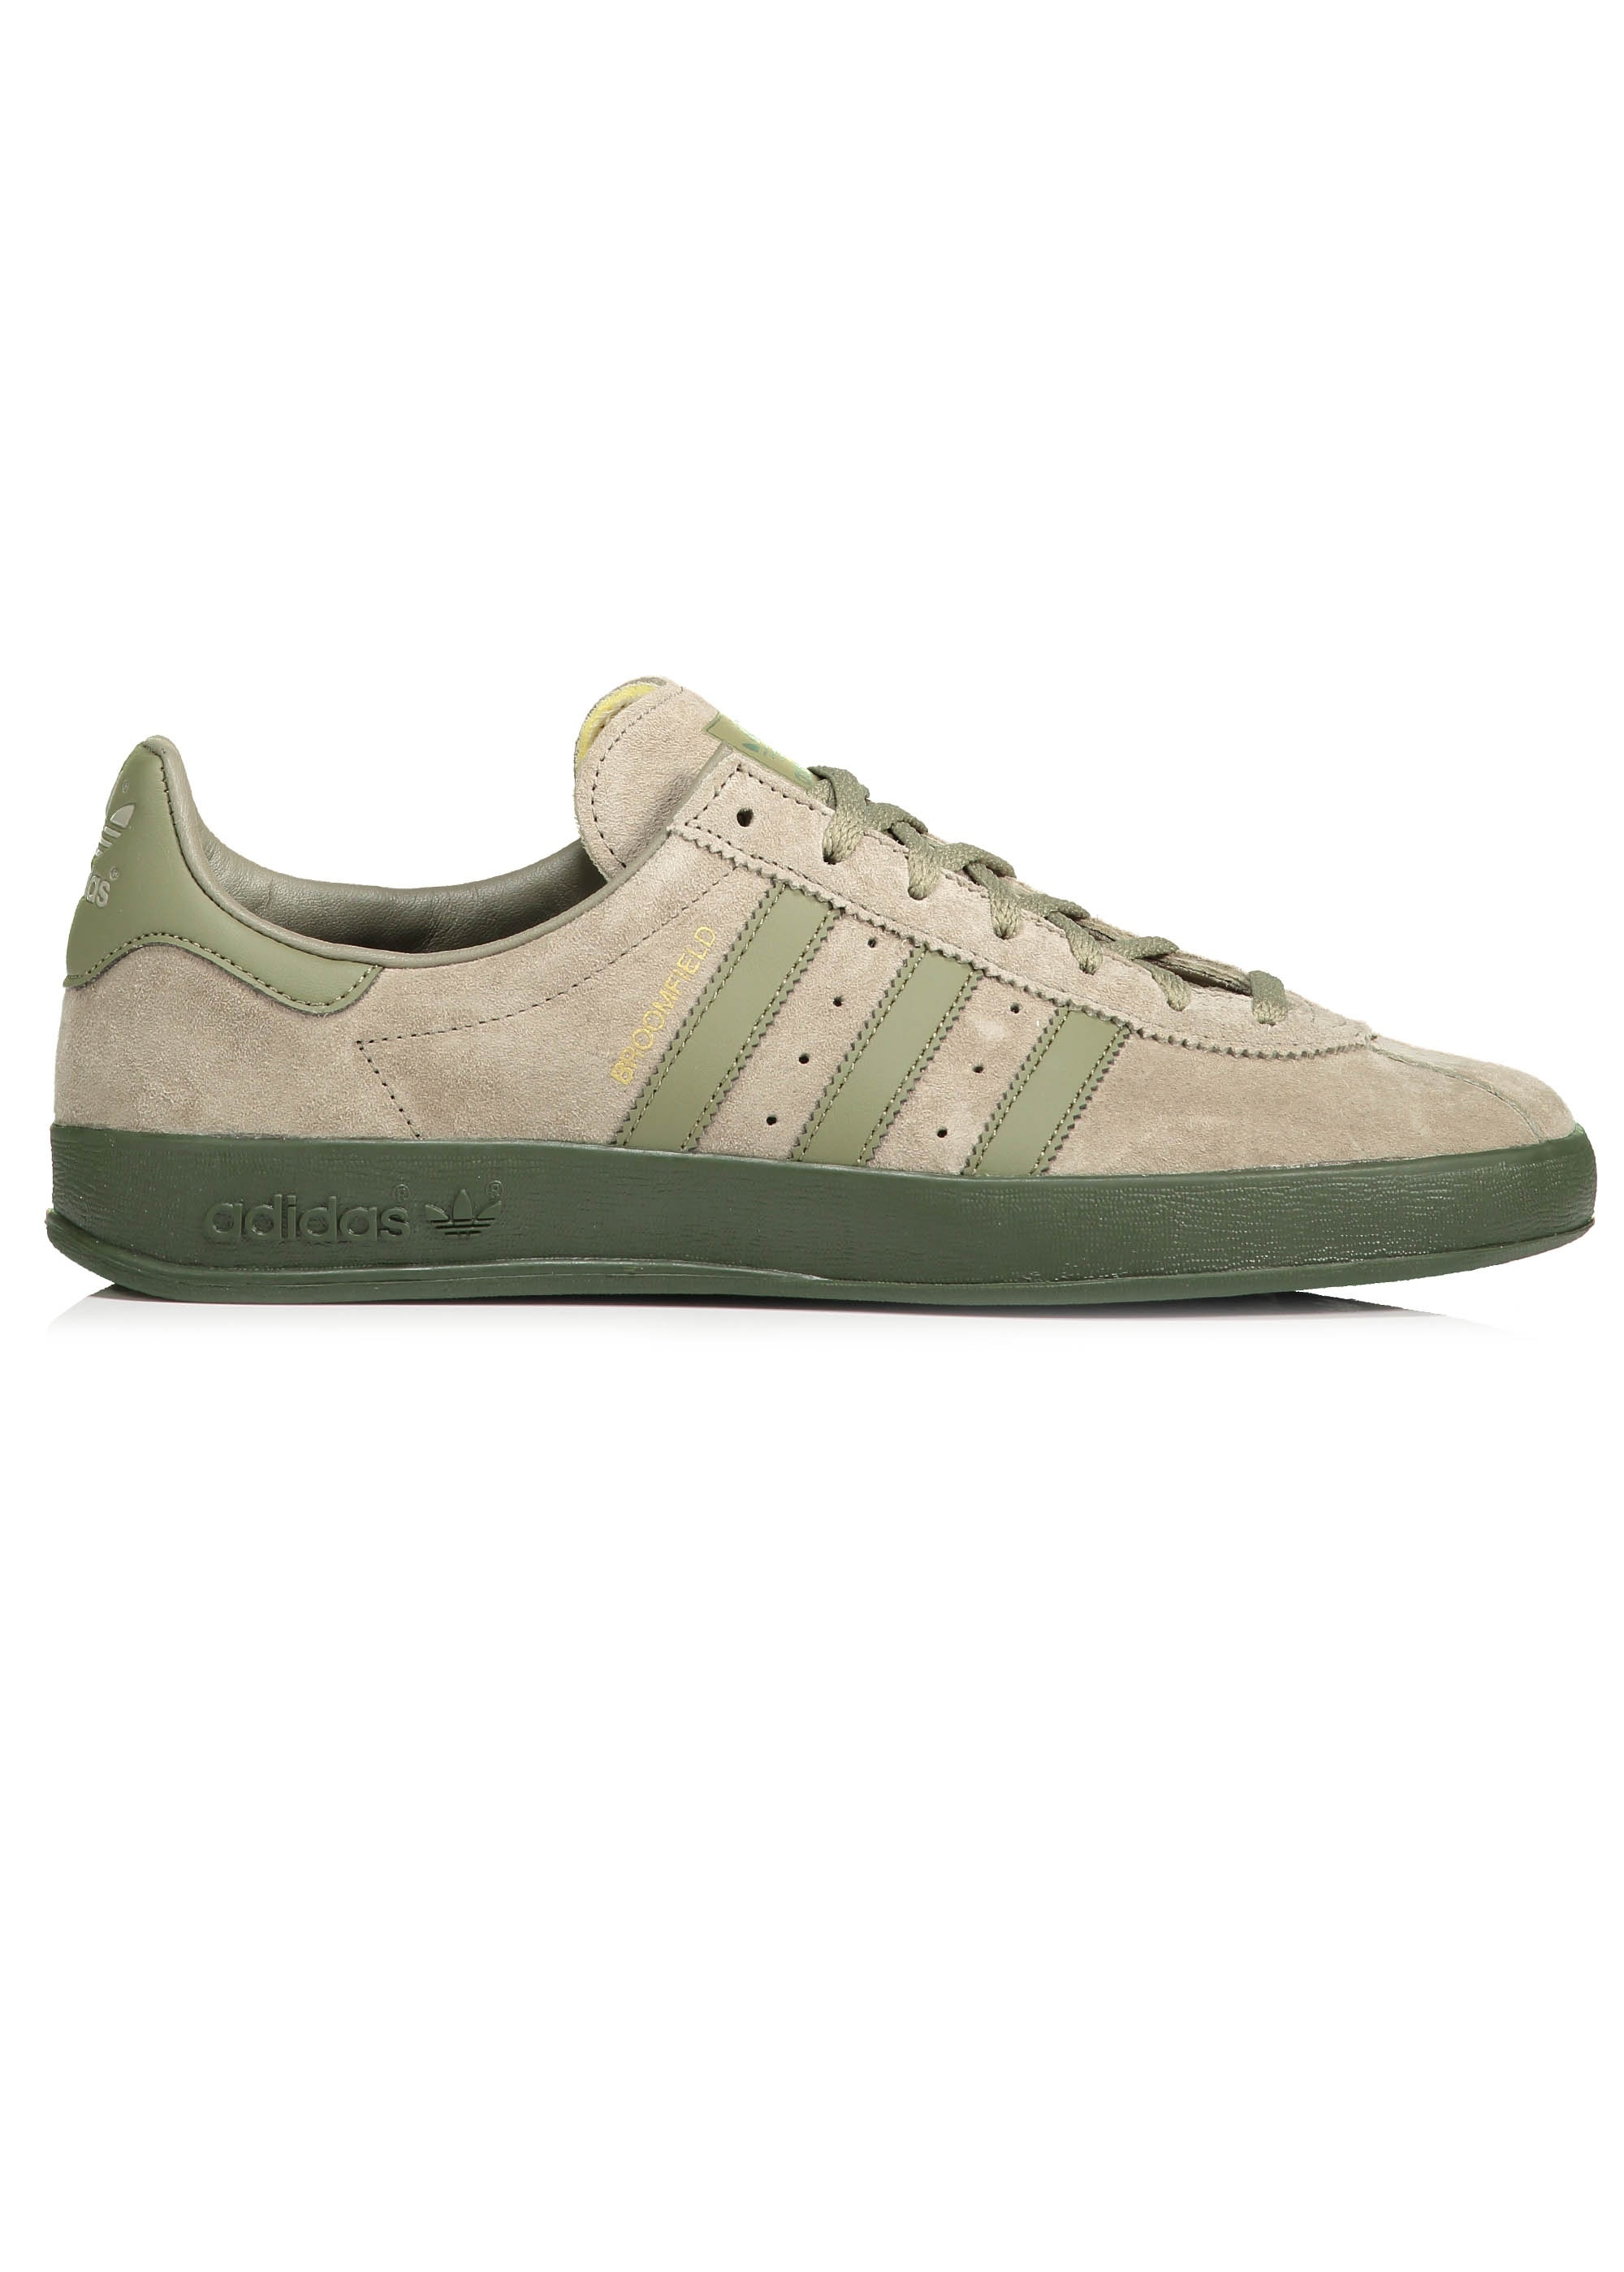 promo code 07f72 68a0a ... Adidas Originals Footwear Broomfield - Green. Tap image to zoom.  Broomfield - Green. Broomfield - Green